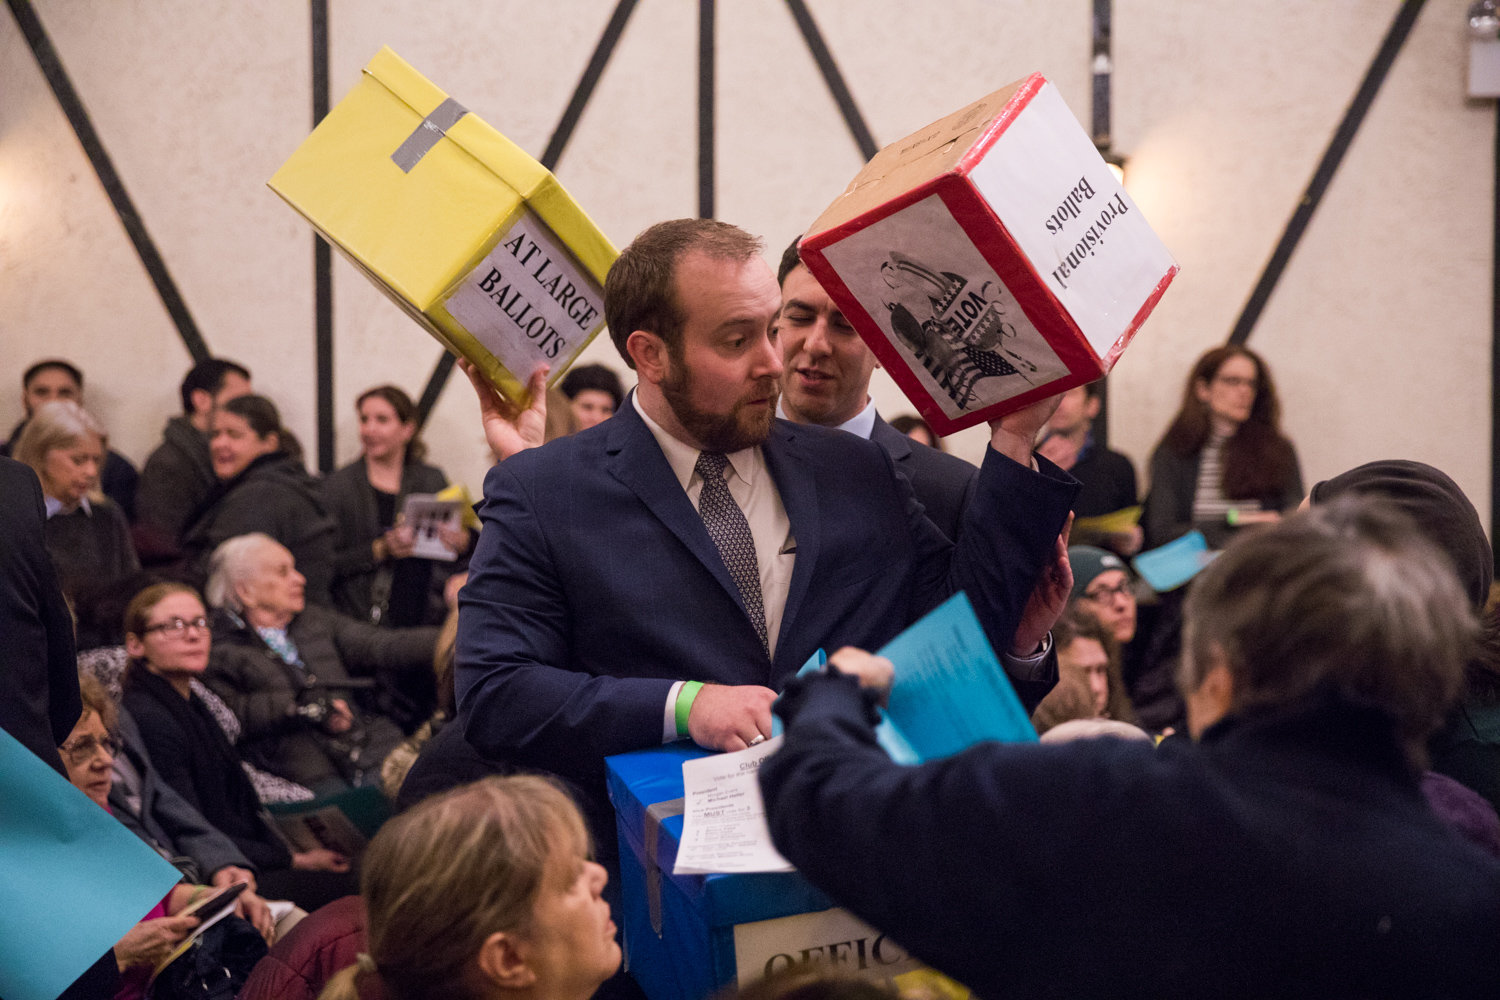 Ivan 'Duffy' Nedds, center left, and Eric Dinowitz carry ballot boxes during the Benjamin Franklin Reform Democratic Club's annual meeting Jan. 29 that saw incumbents win re-election. Both have close connections to Assemblyman Jeffrey Dinowitz — Nedds is a paid staffer in the lawmaker's district office, while Eric is his son, who also is running for city council.